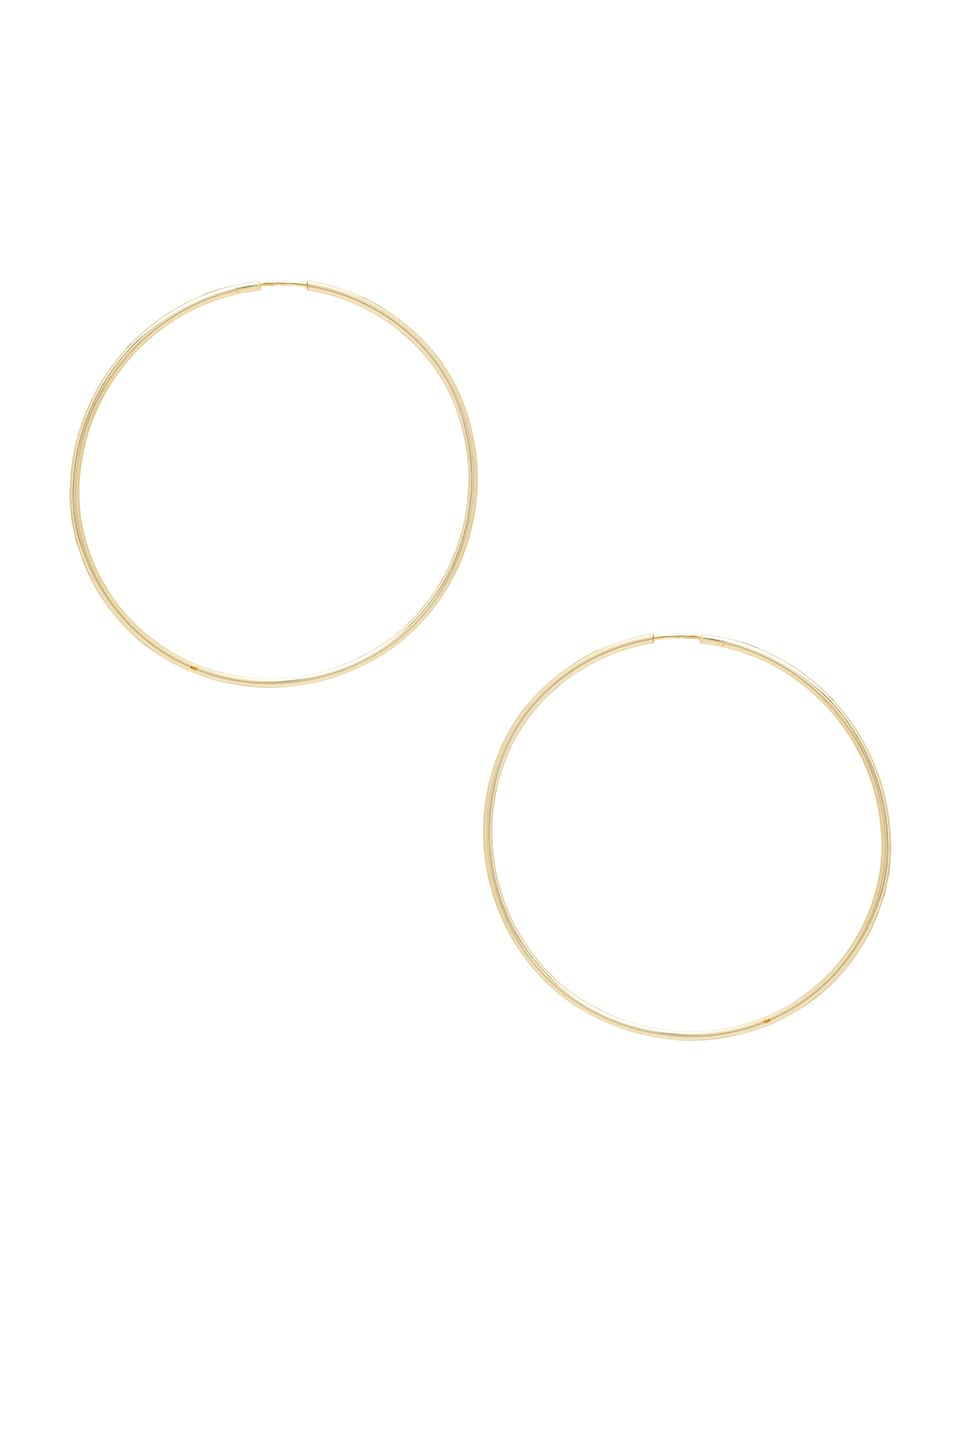 THE M JEWELERS NY EXTRA LARGE HOOPS